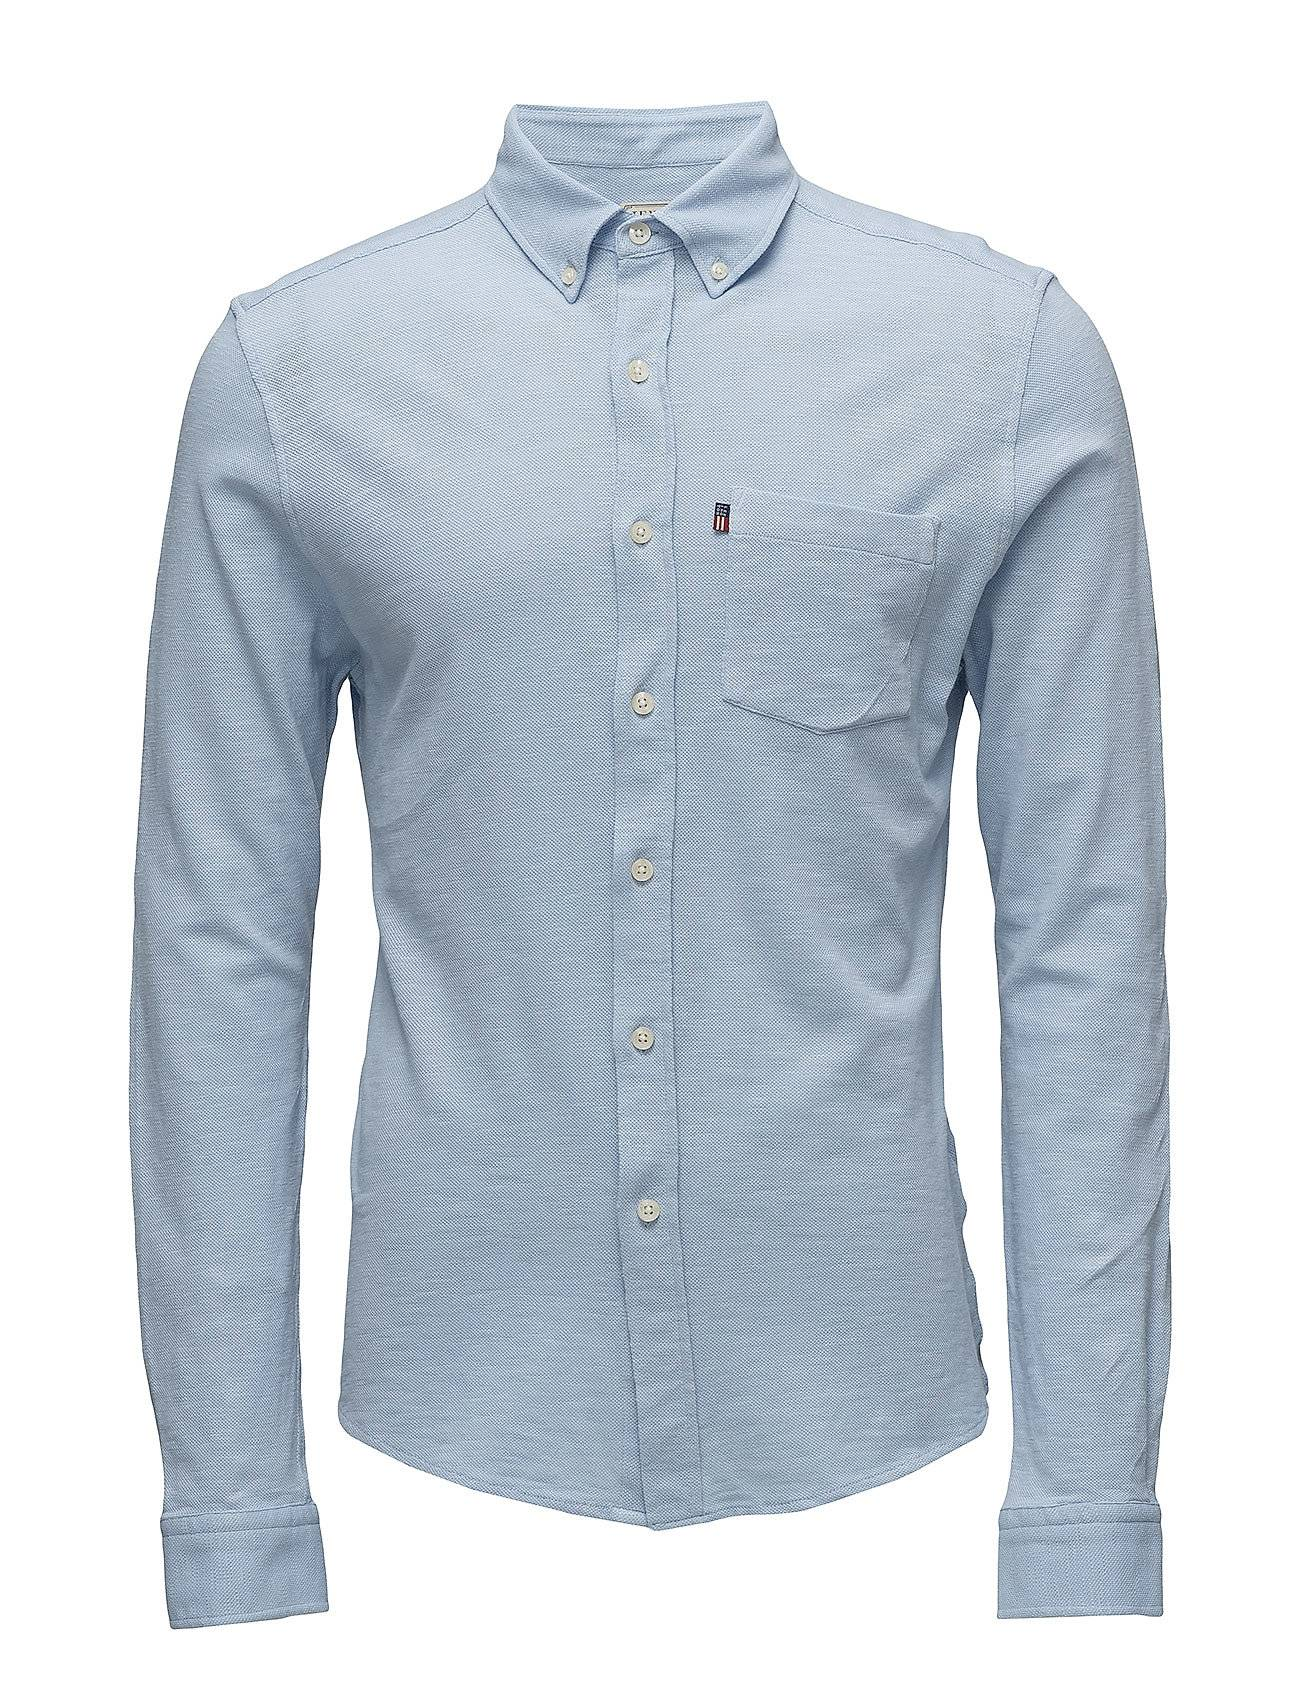 Lexington Clothing Irvin Pique Shirt